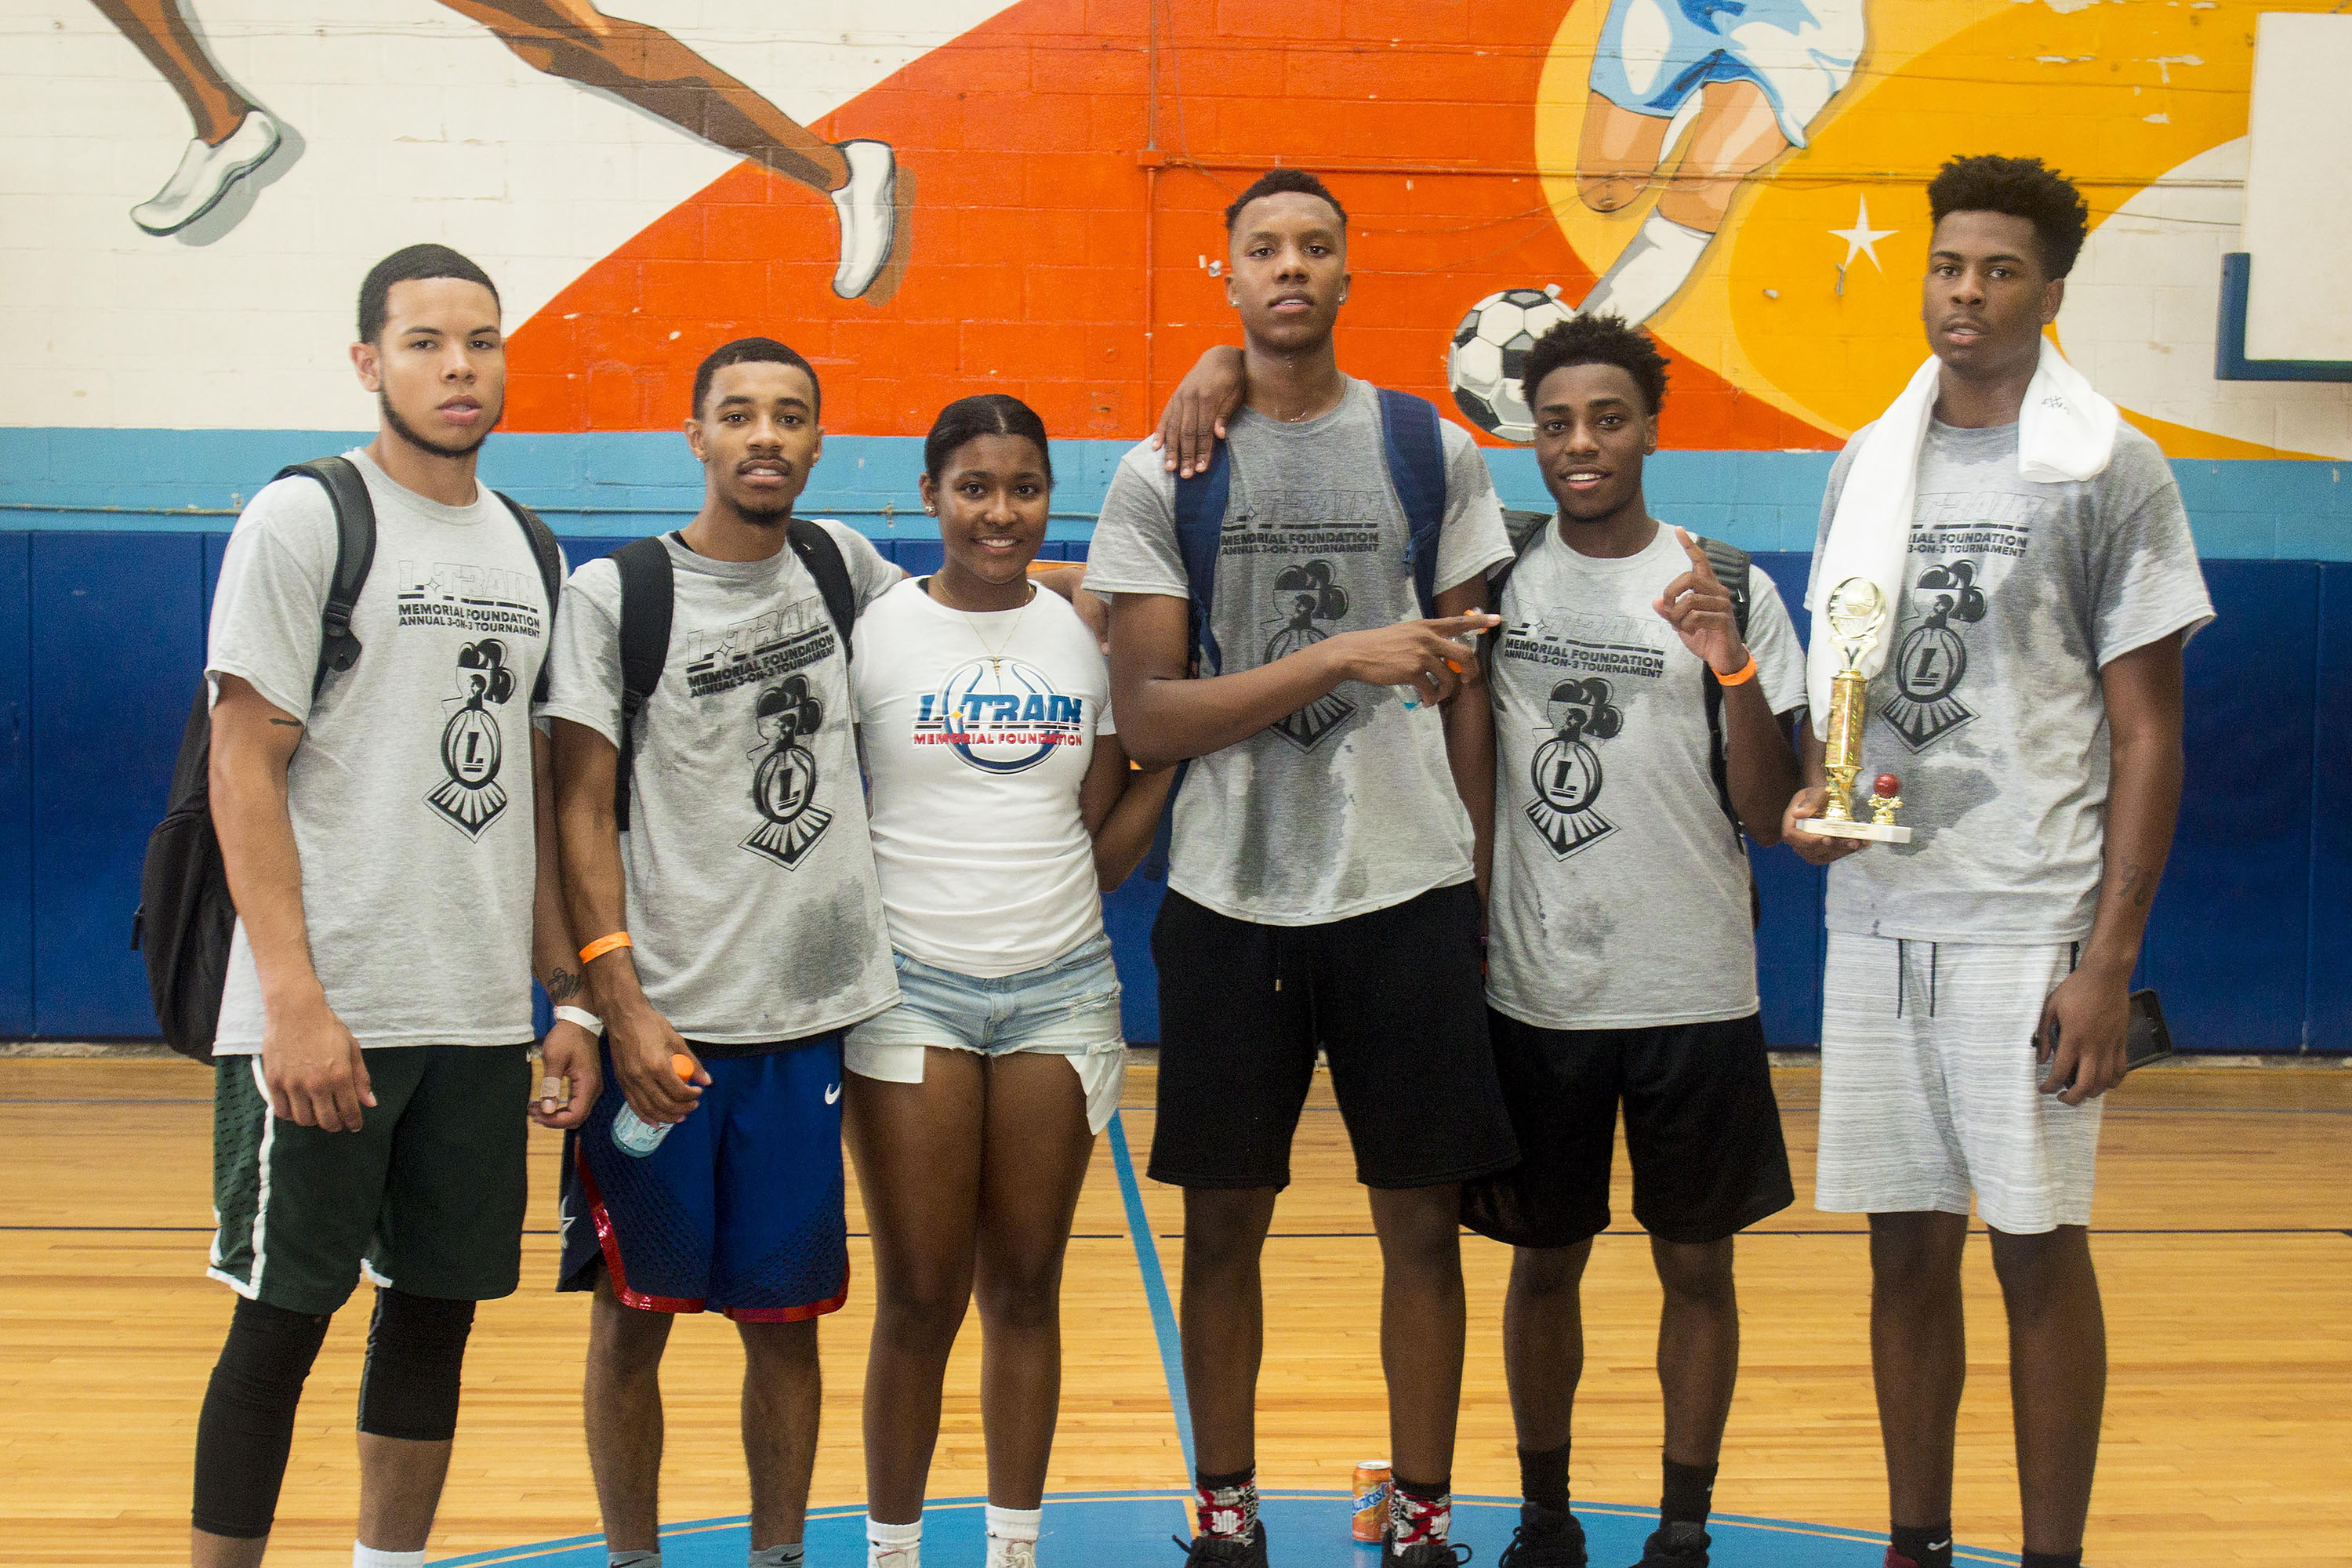 L-Train Memorial Foundation - Annual 3-On-3 Tournament (Boys and Girls Club Union, NJ) 08-07-16_0197